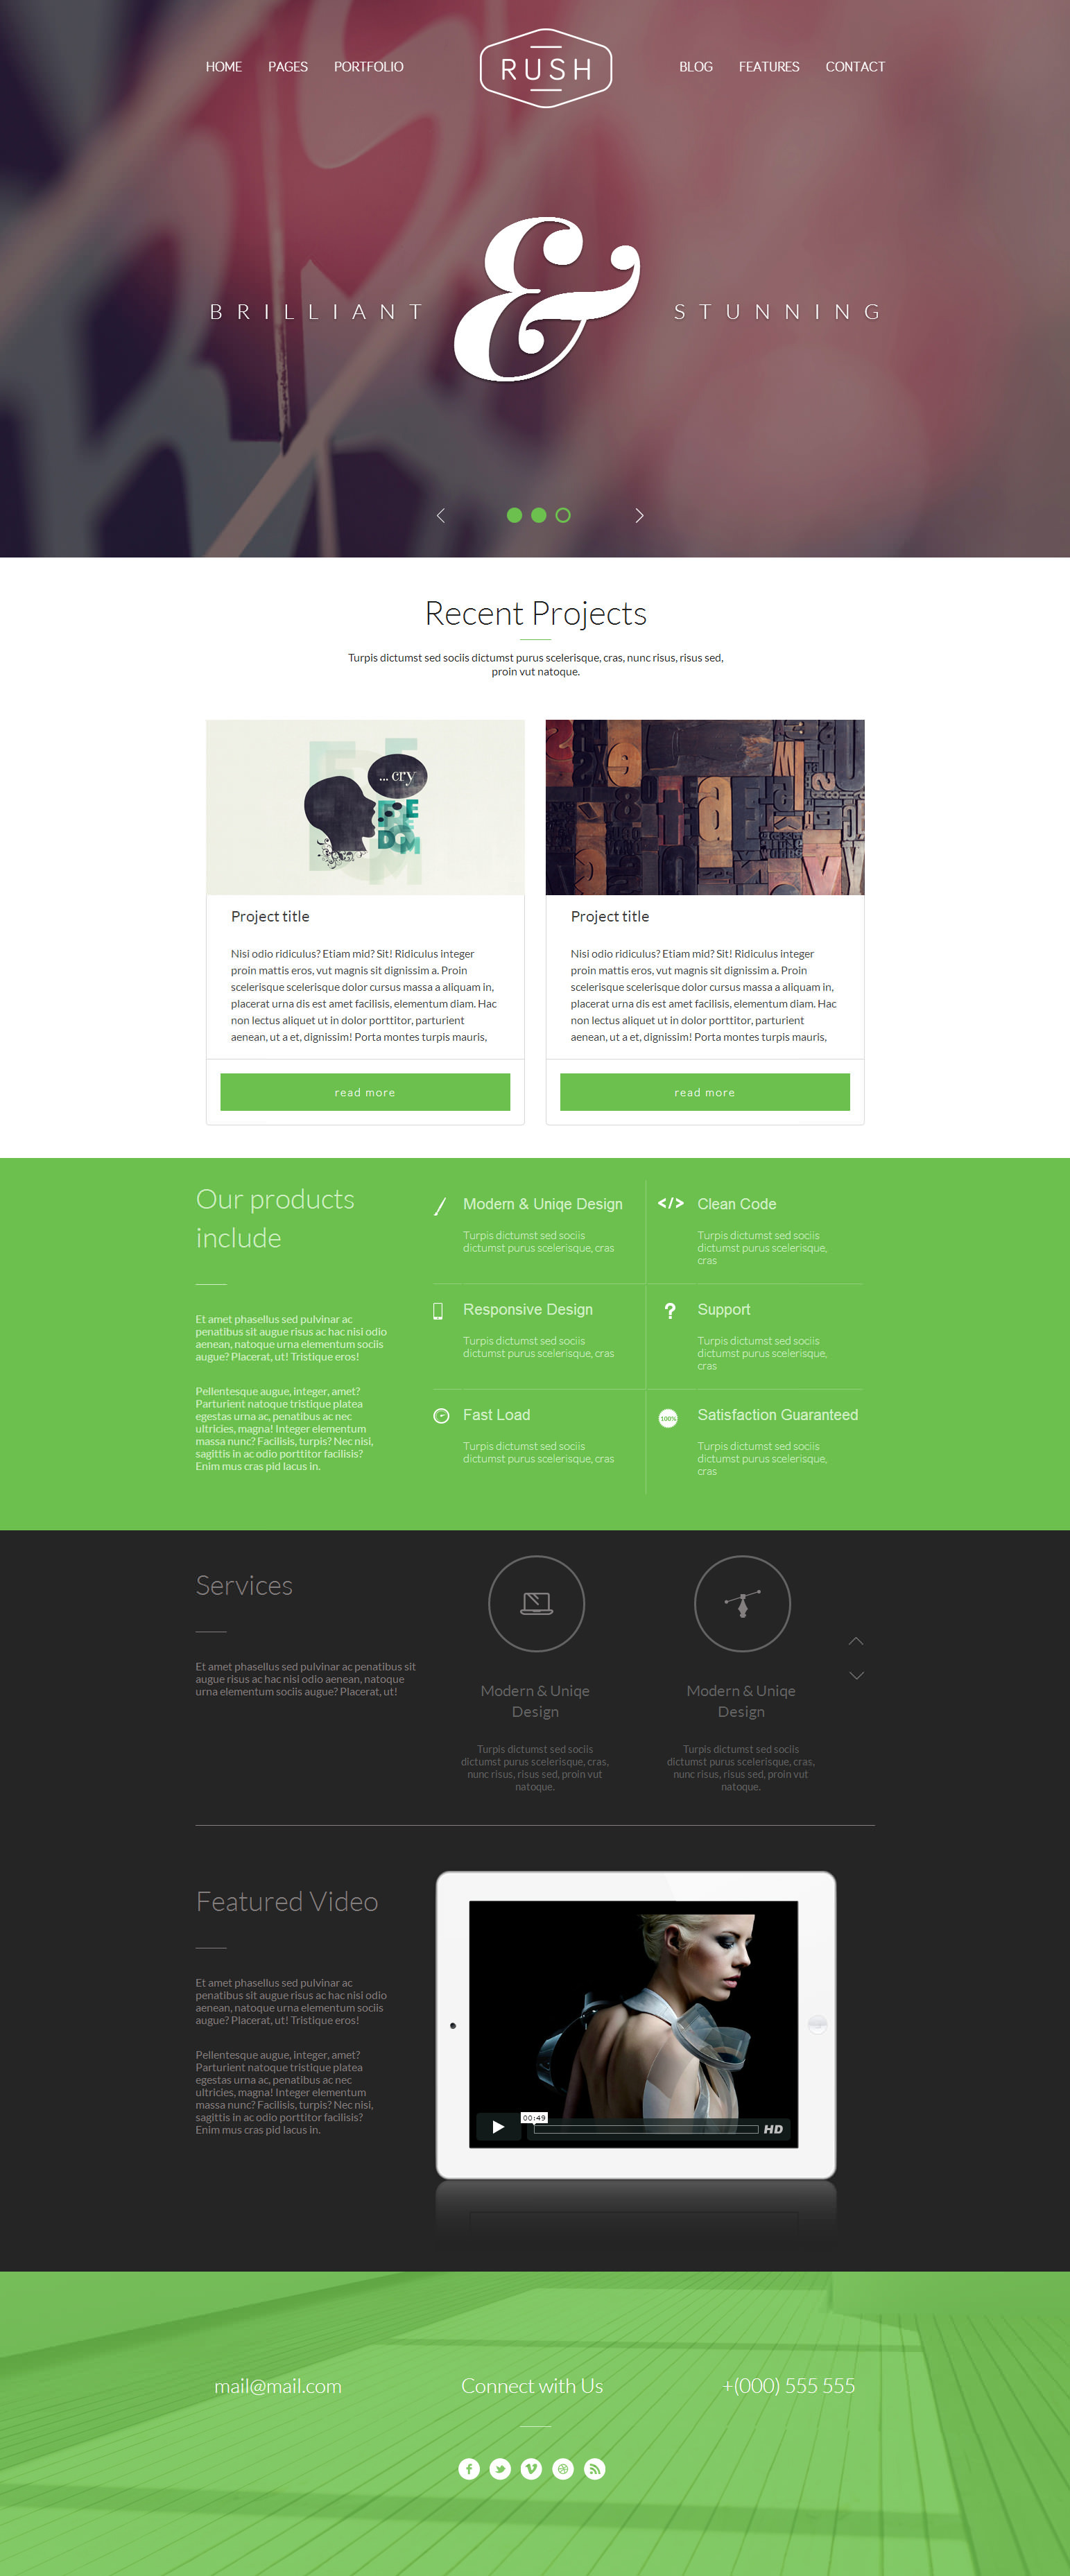 Rush - Multipurpose Creative Responsive Website